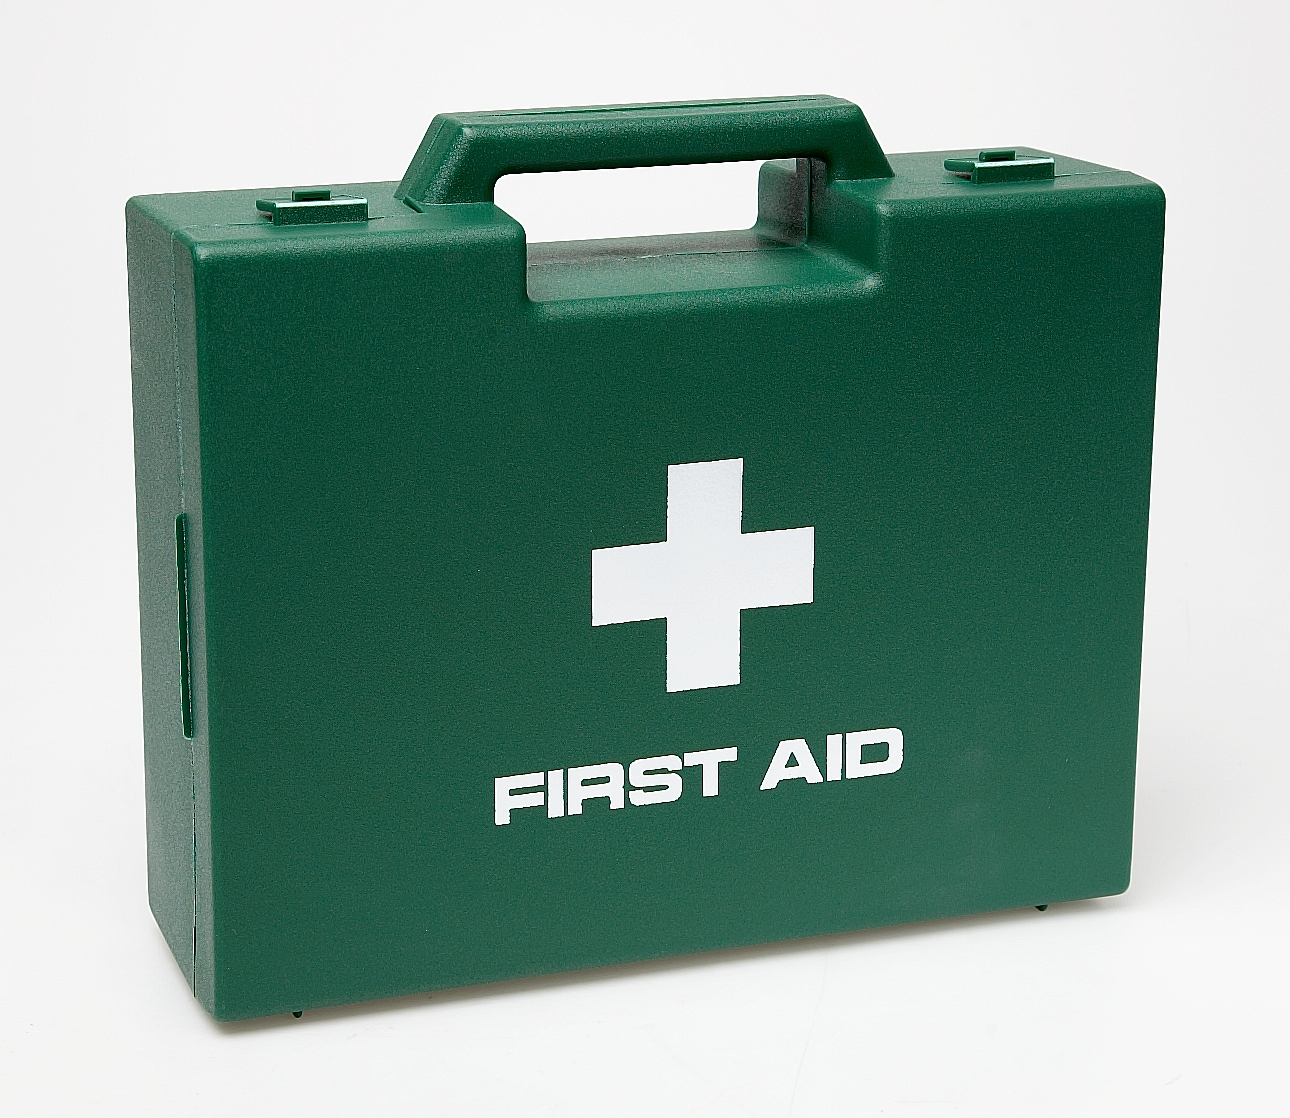 Battles First Aid Carrying Case